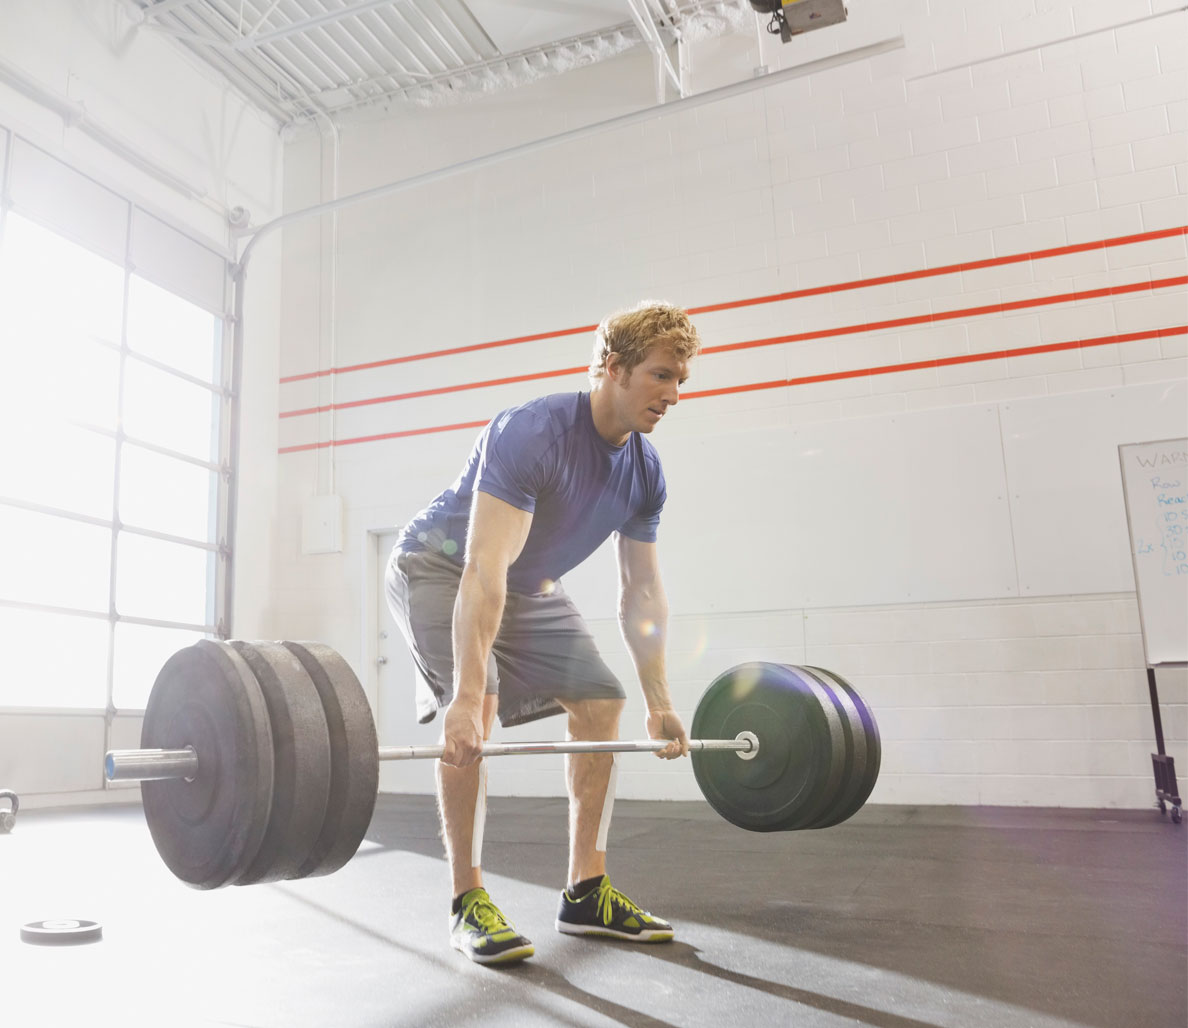 The #1 best exercise for men, according